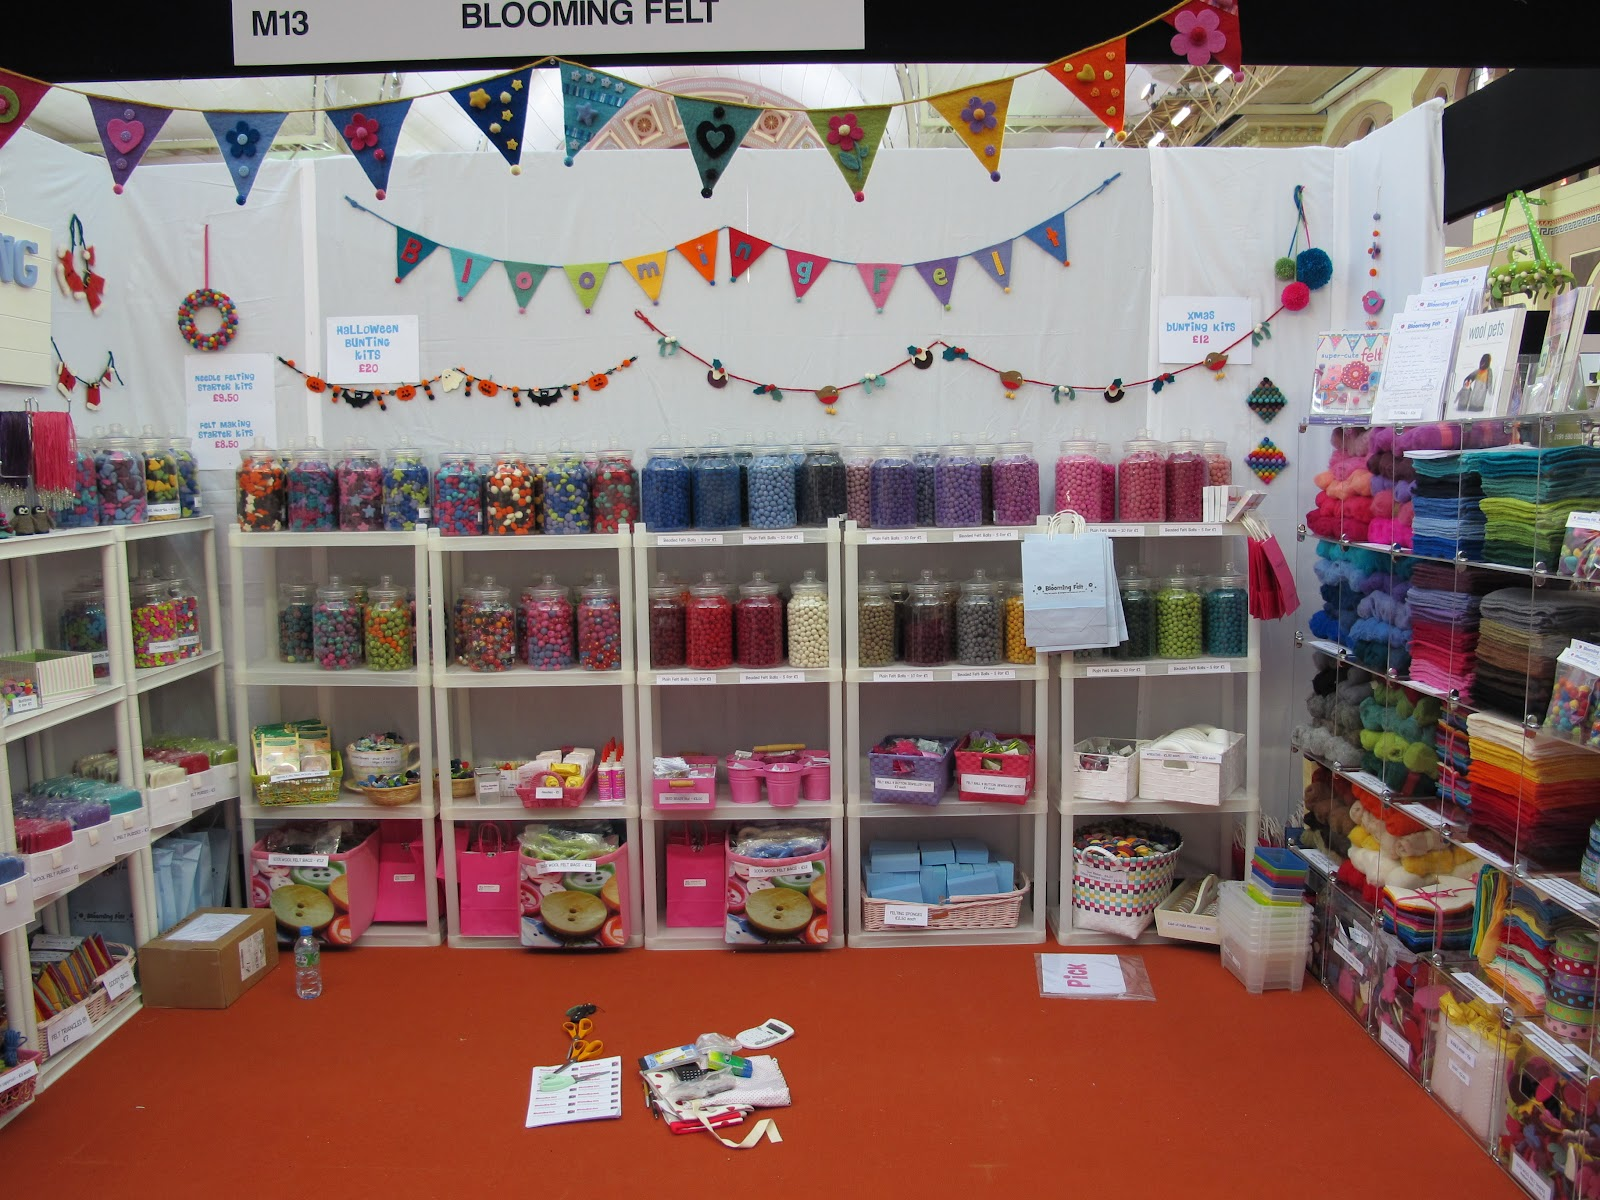 Blooming Felt - News from Shedquarters: Knitting & Stitching Show